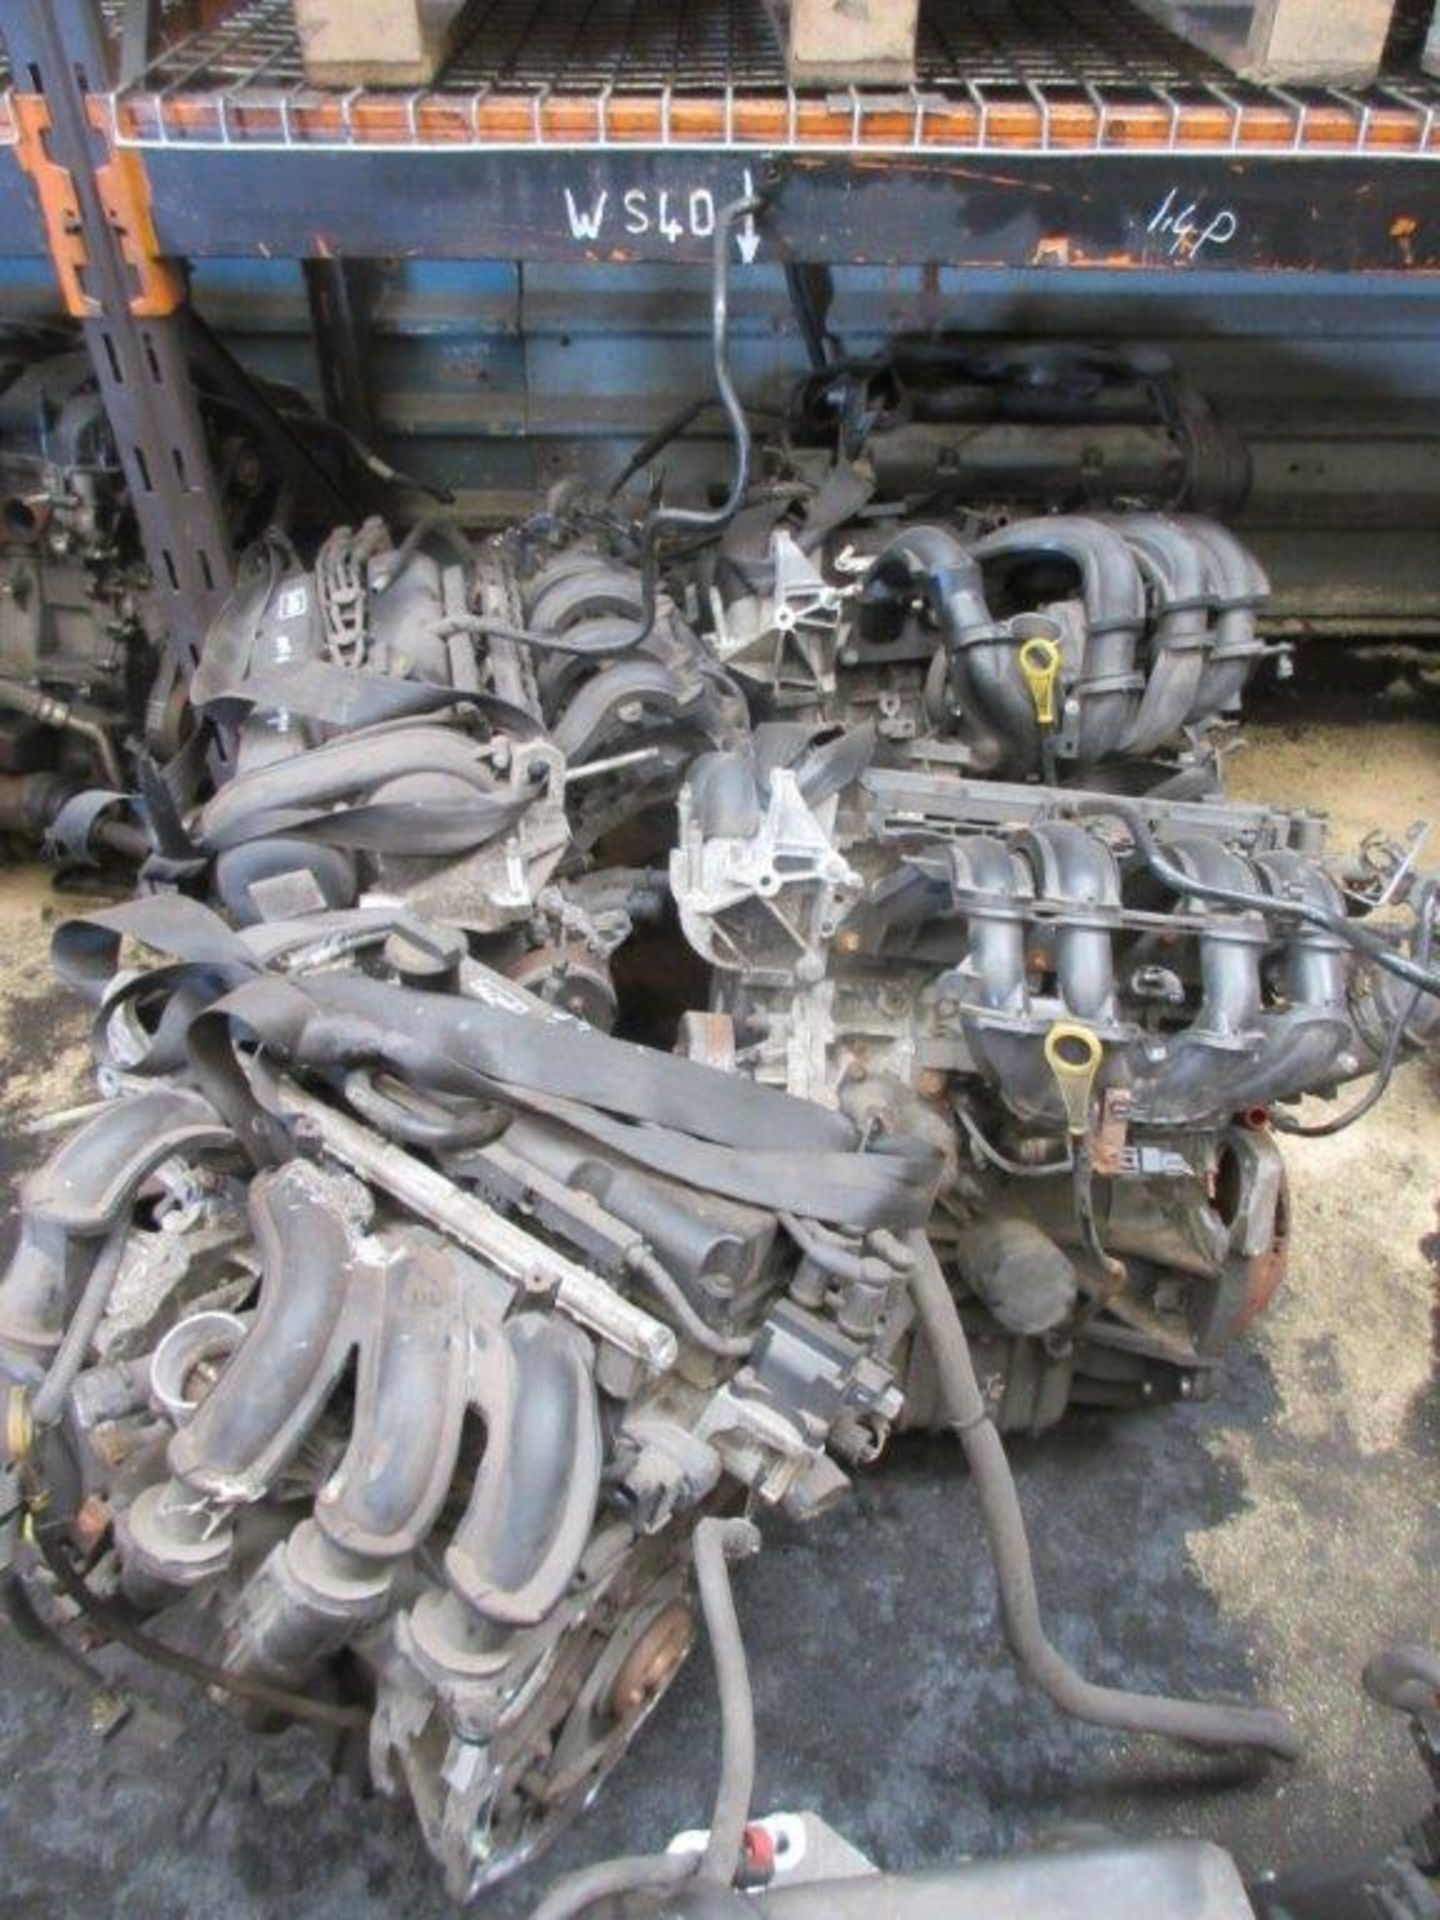 Lot 50 - 20 assorted engines including ADDA Mk 2 2 litre P, 1.8P, unknown, JMK, unknown, JMK 2 litre, SNJB 59